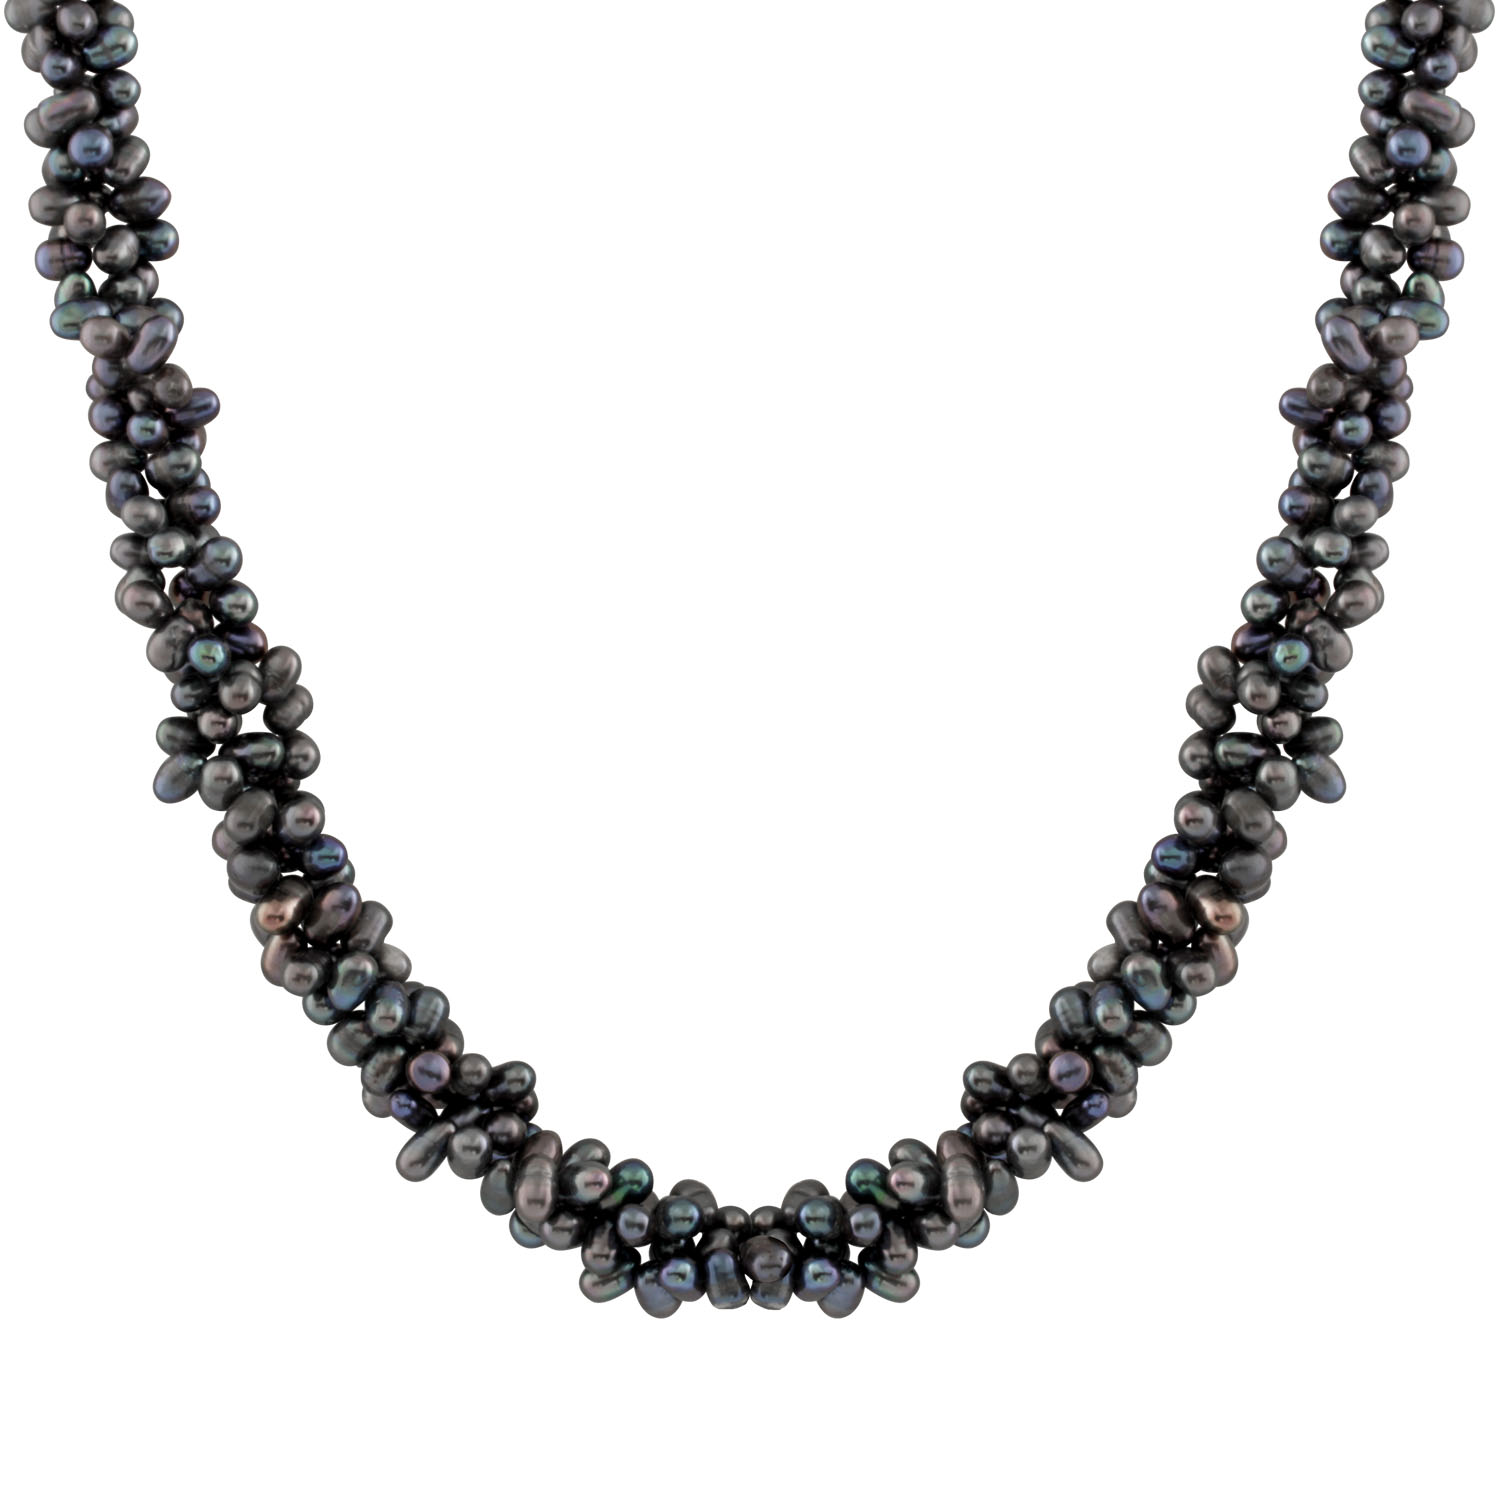 New multi row necklace